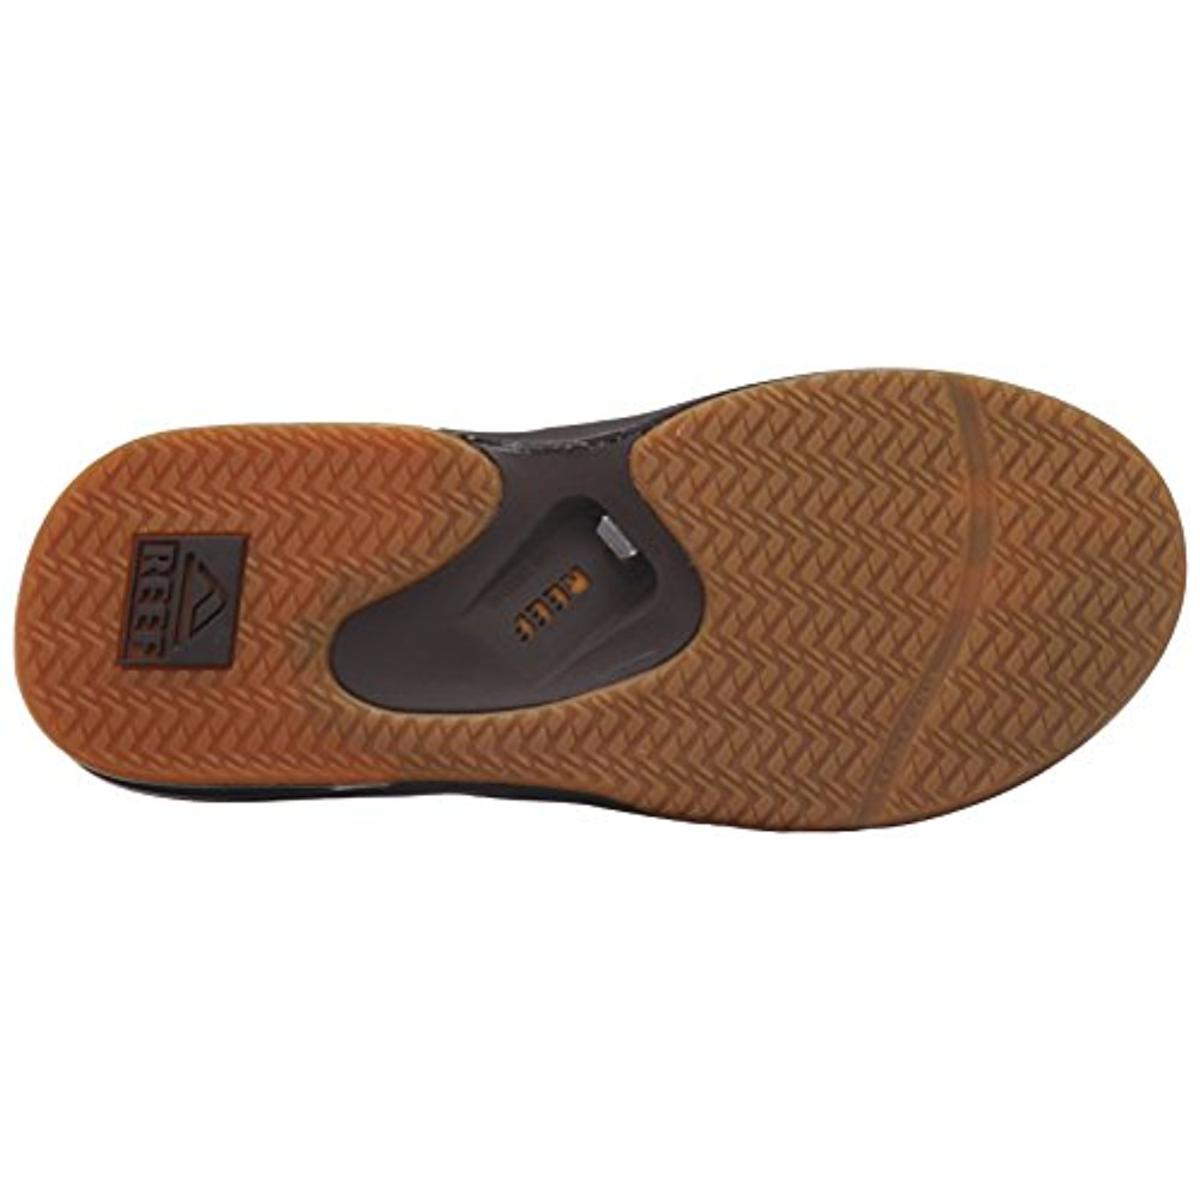 reef 4677 mens fanning ii bottle opener thong sandals flip flops shoes bhfo ebay. Black Bedroom Furniture Sets. Home Design Ideas